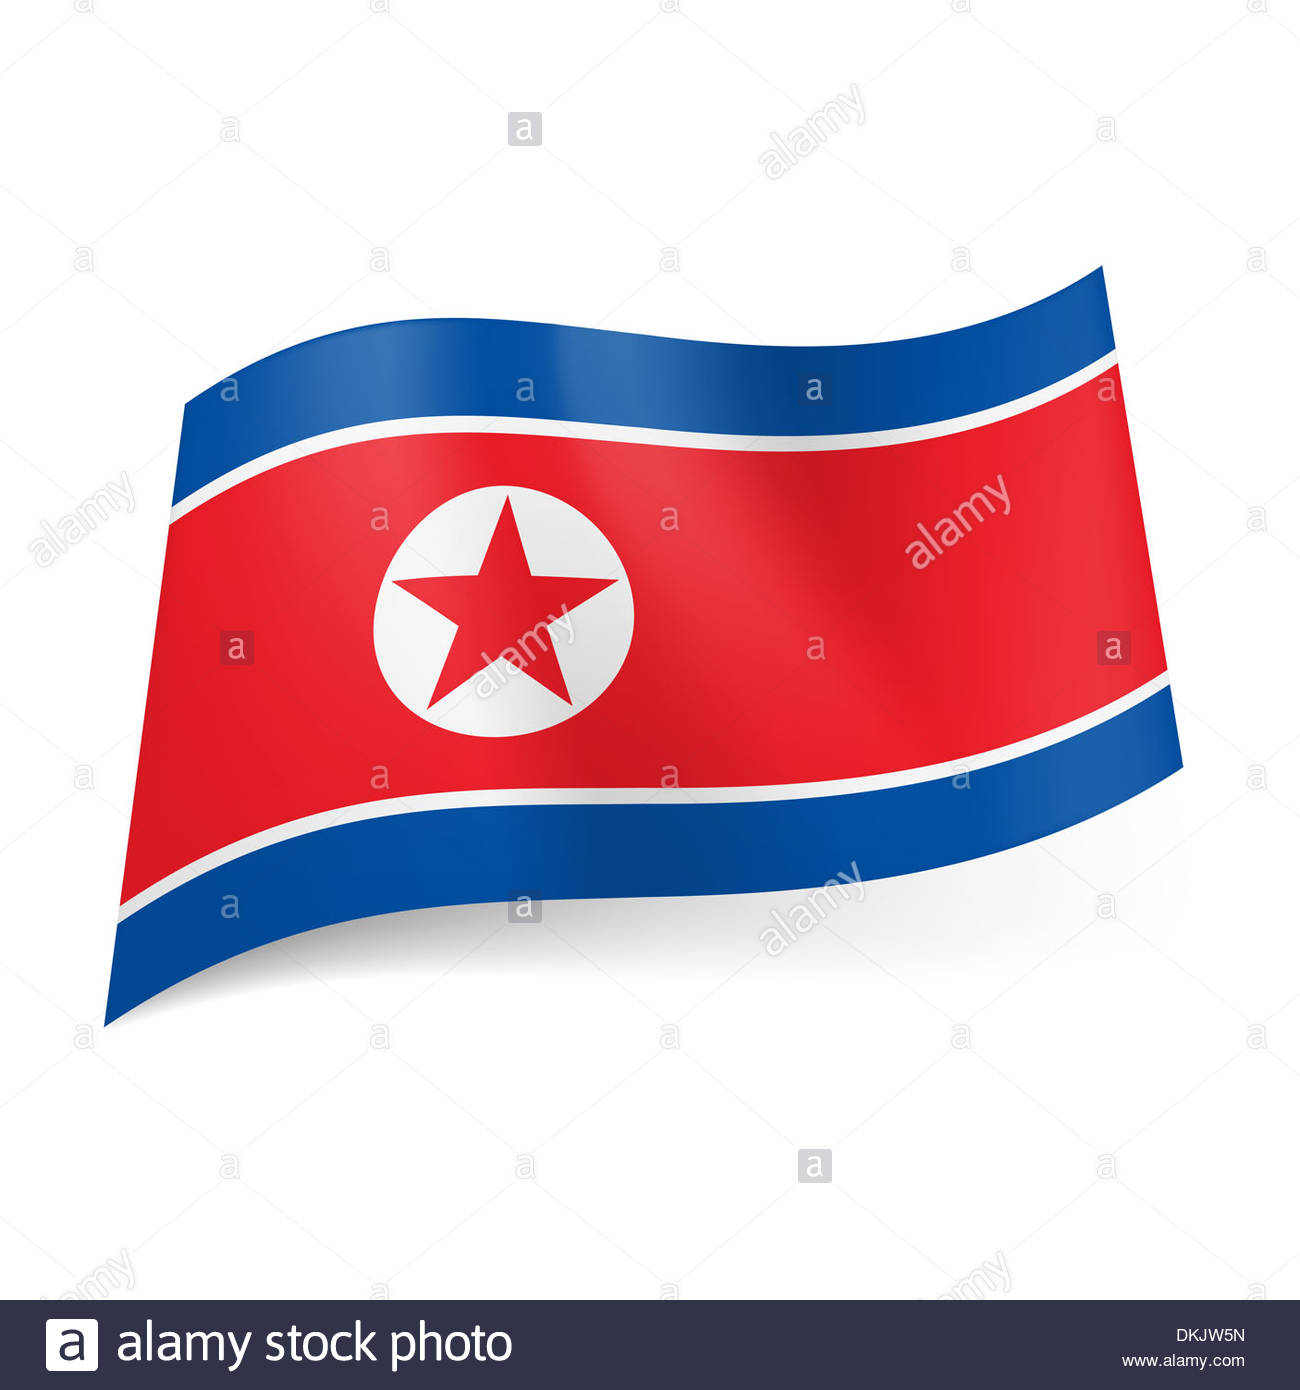 1300x1390 National Flag Of North Korea Red Star In White Circle On Red